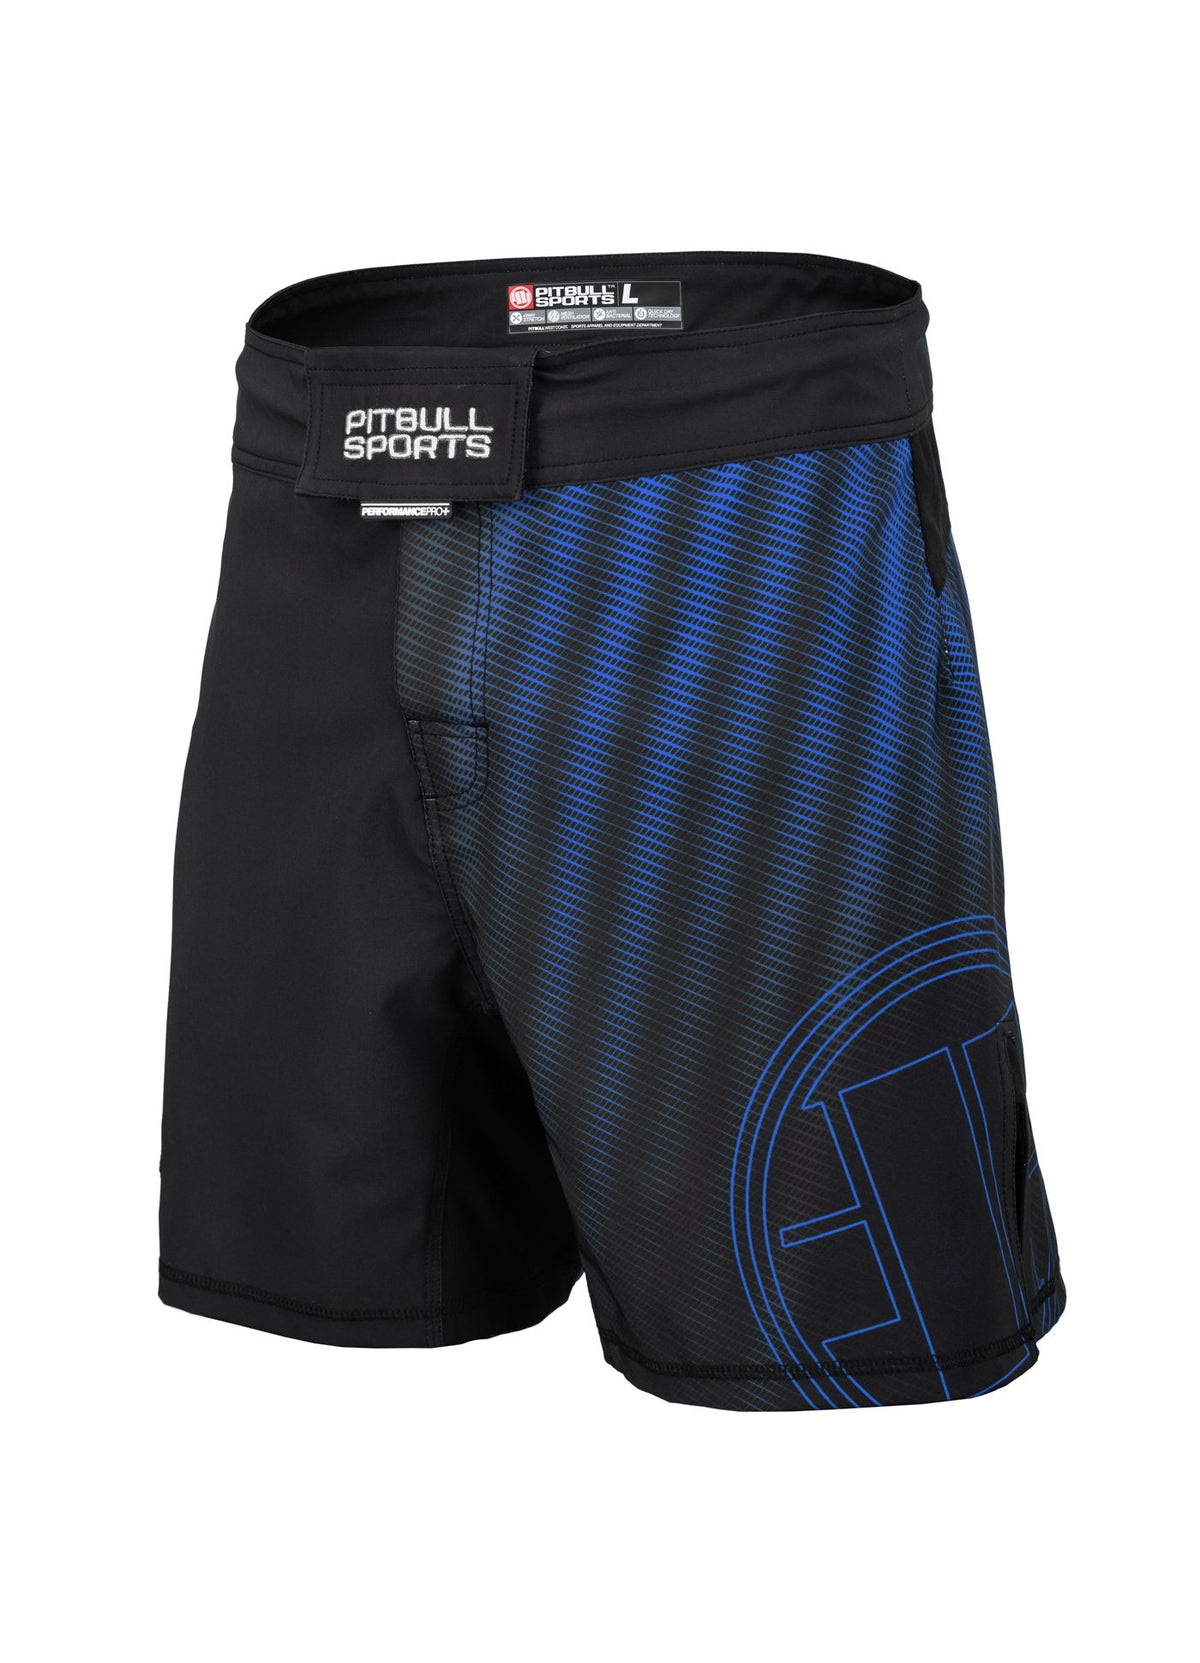 Grappling Shorts RASTER Blue - Pitbull West Coast U.S.A.